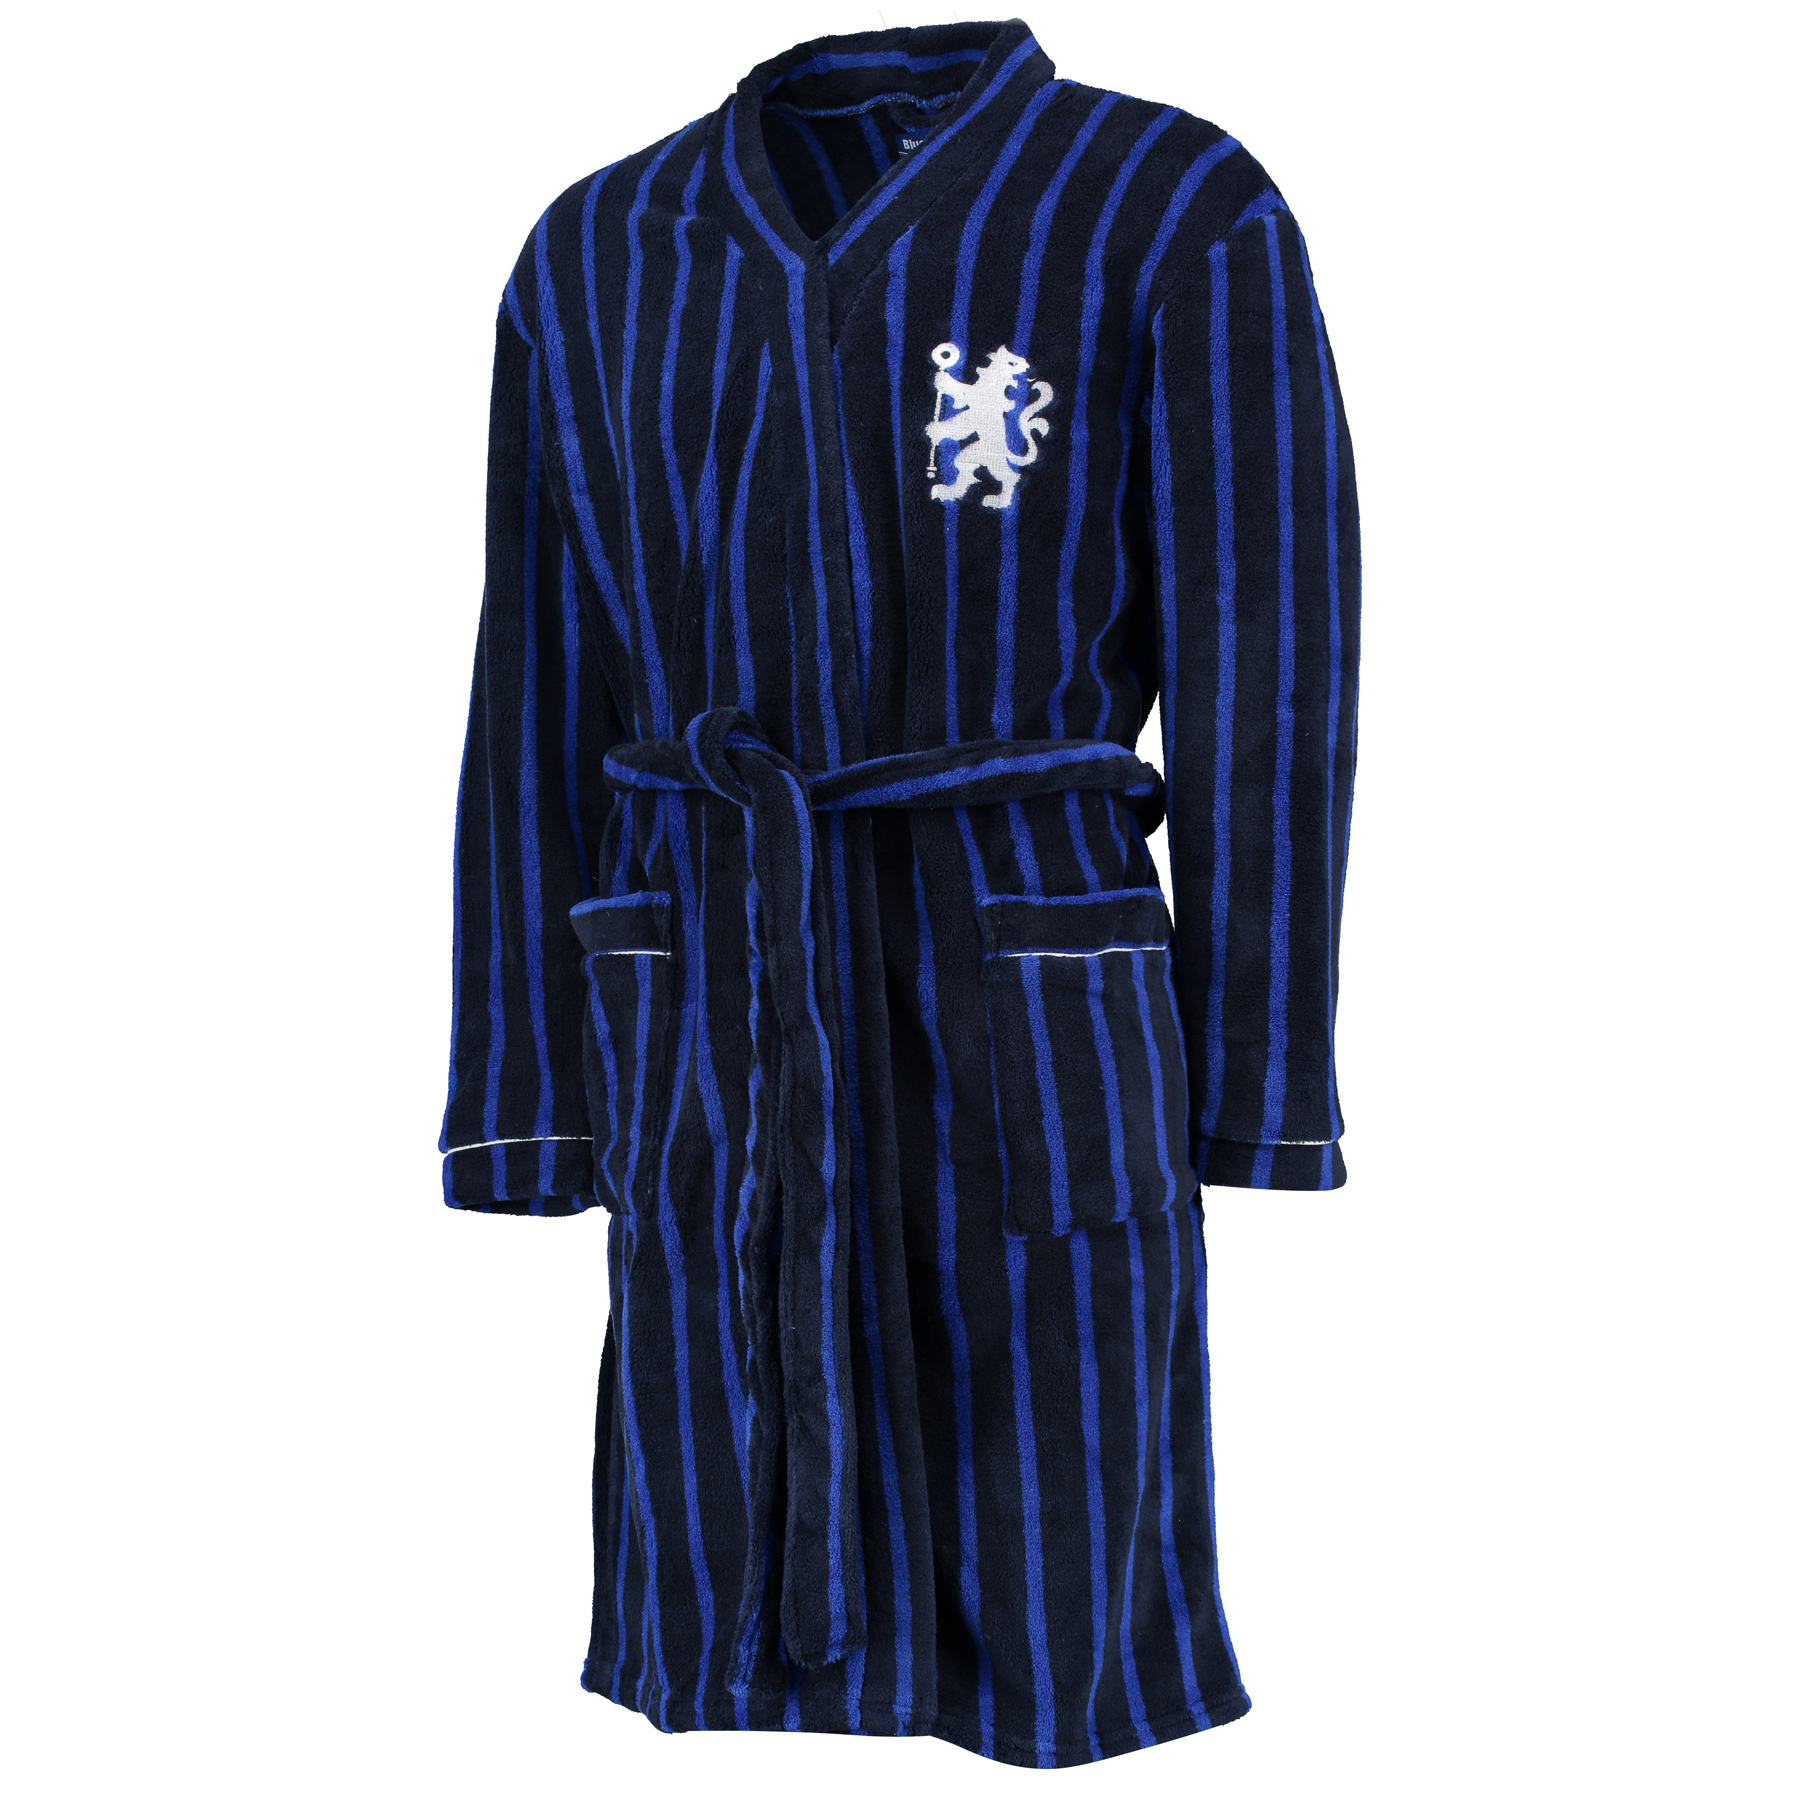 Chelsea Striped Robe - Navy - Mens   Shawl collar. Embroidered lion logo. White piping on cuffs and pockets. All over printed vertical stripes. Supersoft Fleece. 100% Polyester. Machine washable.